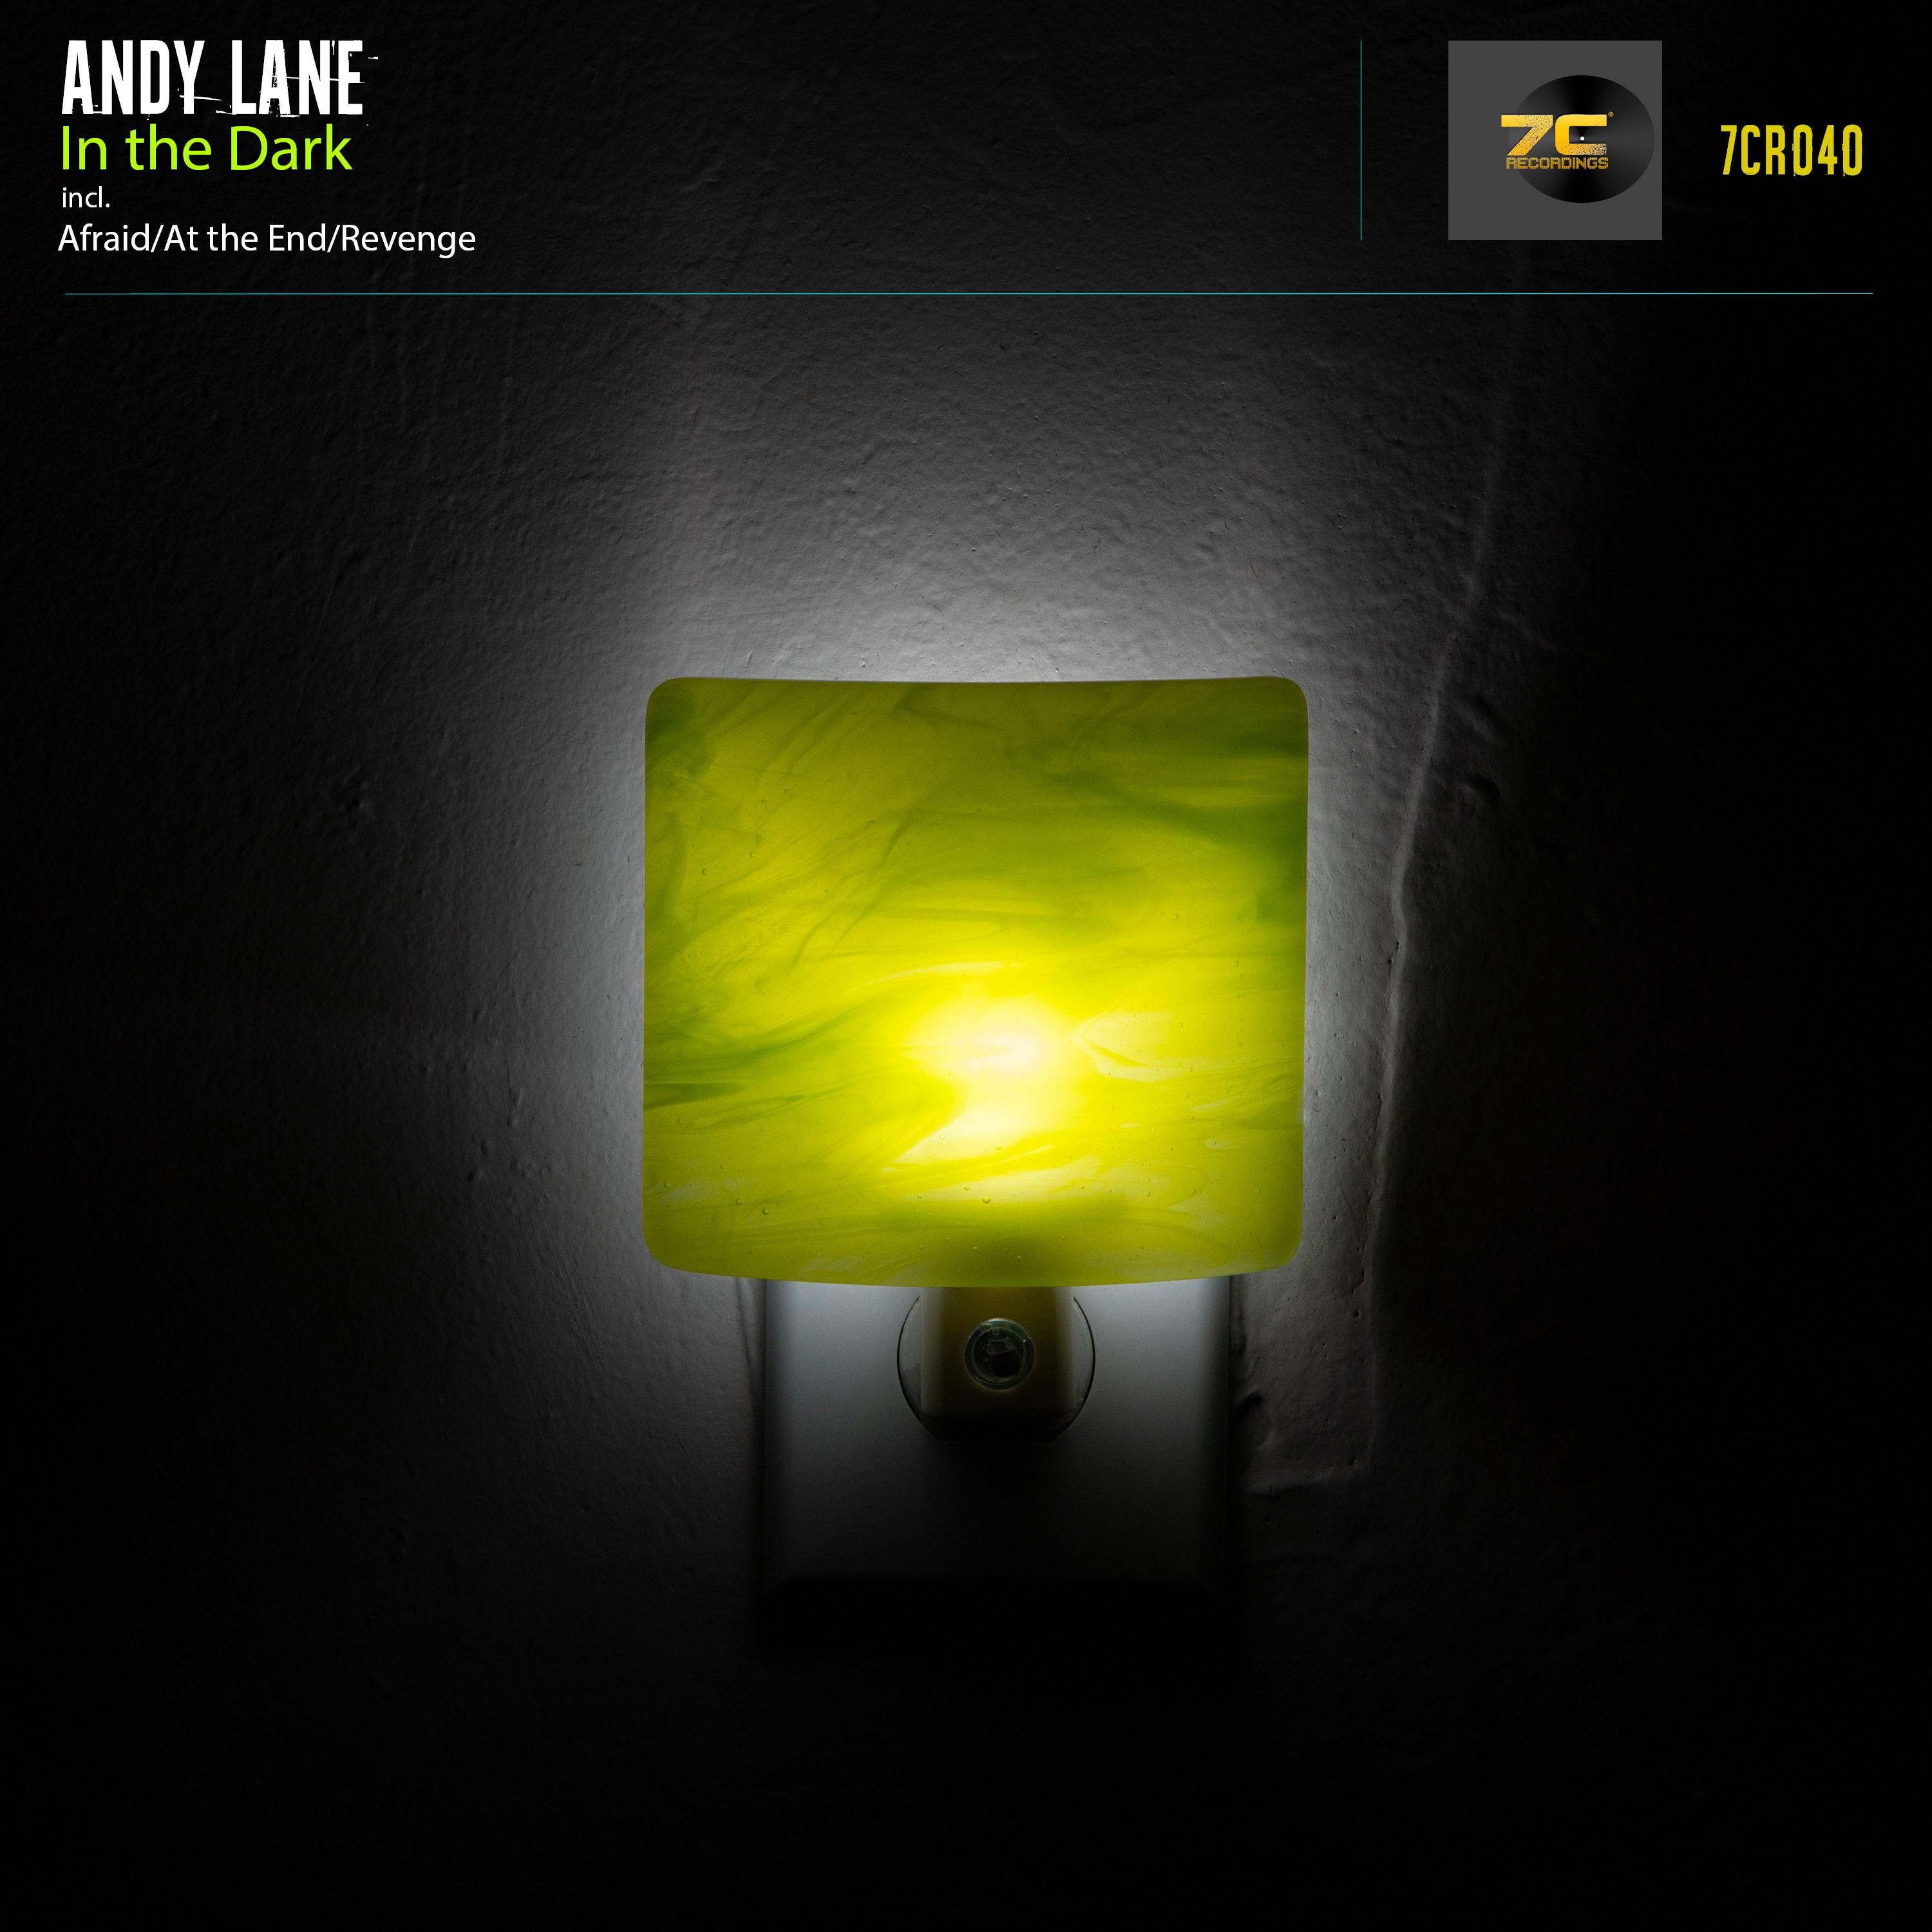 Andy Lane - In the dark